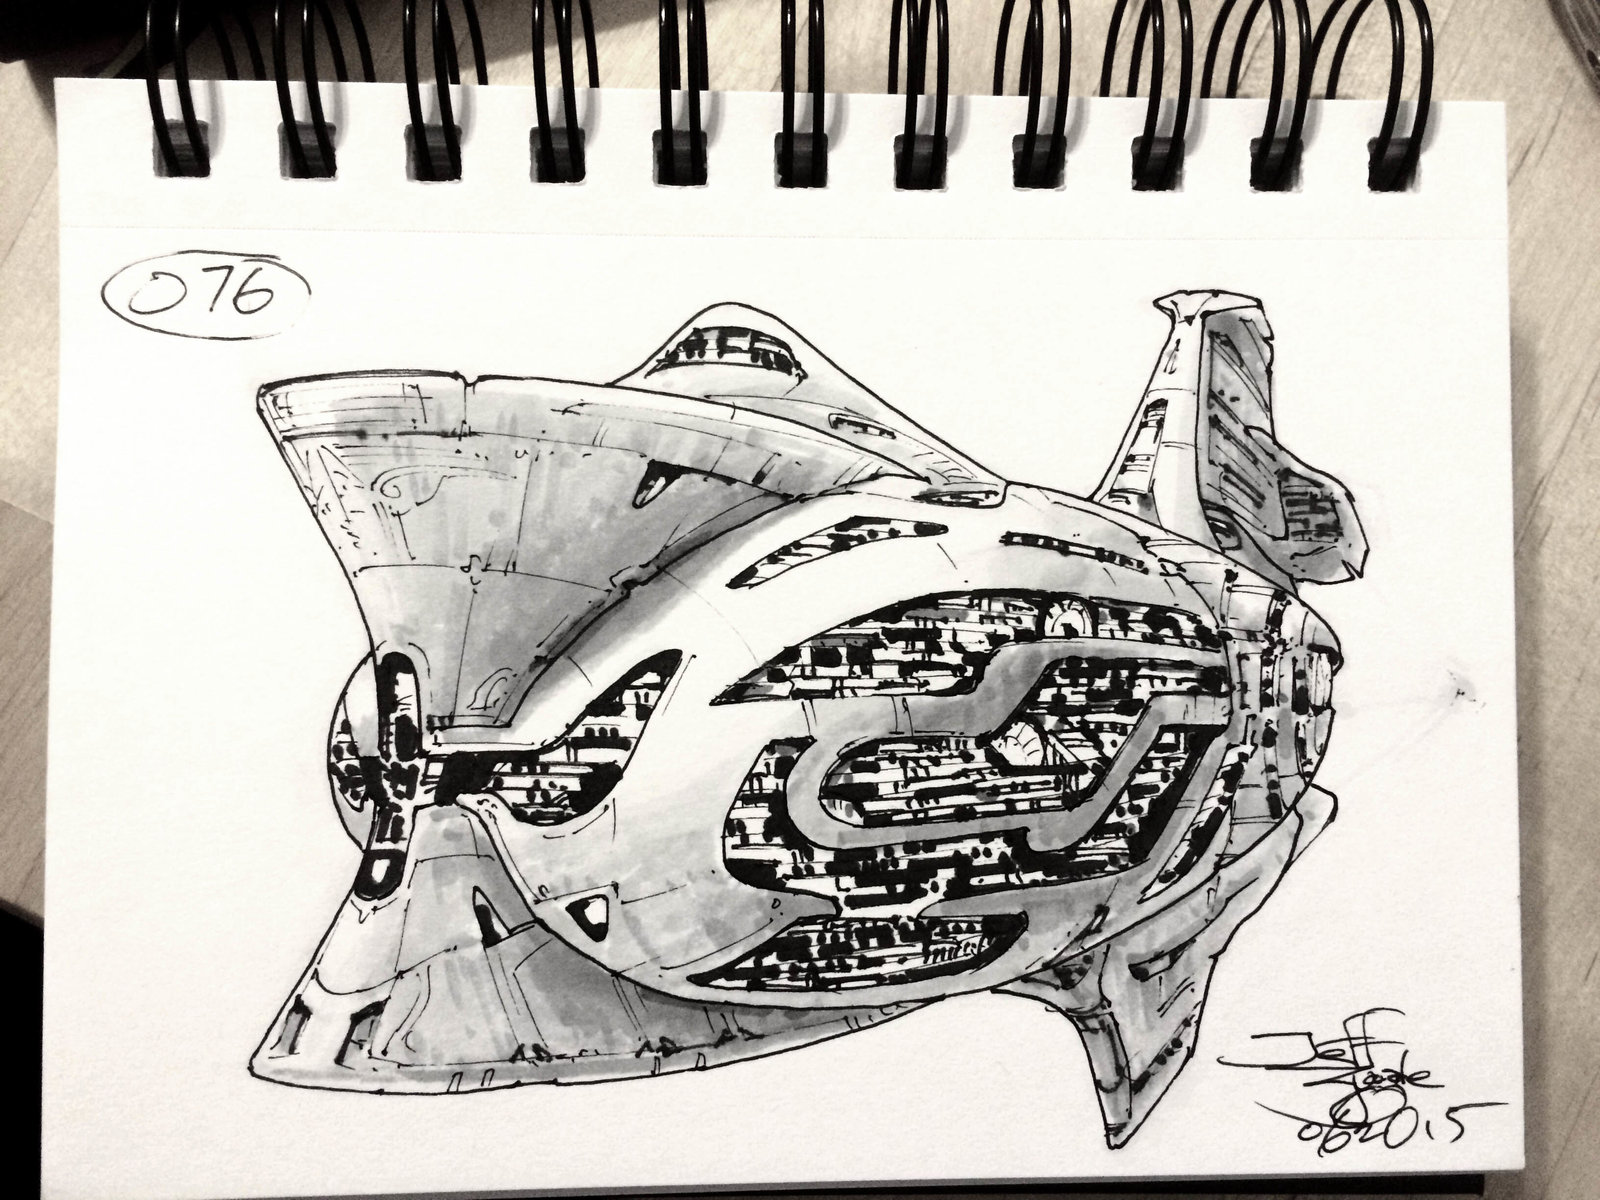 SpaceshipADay 076